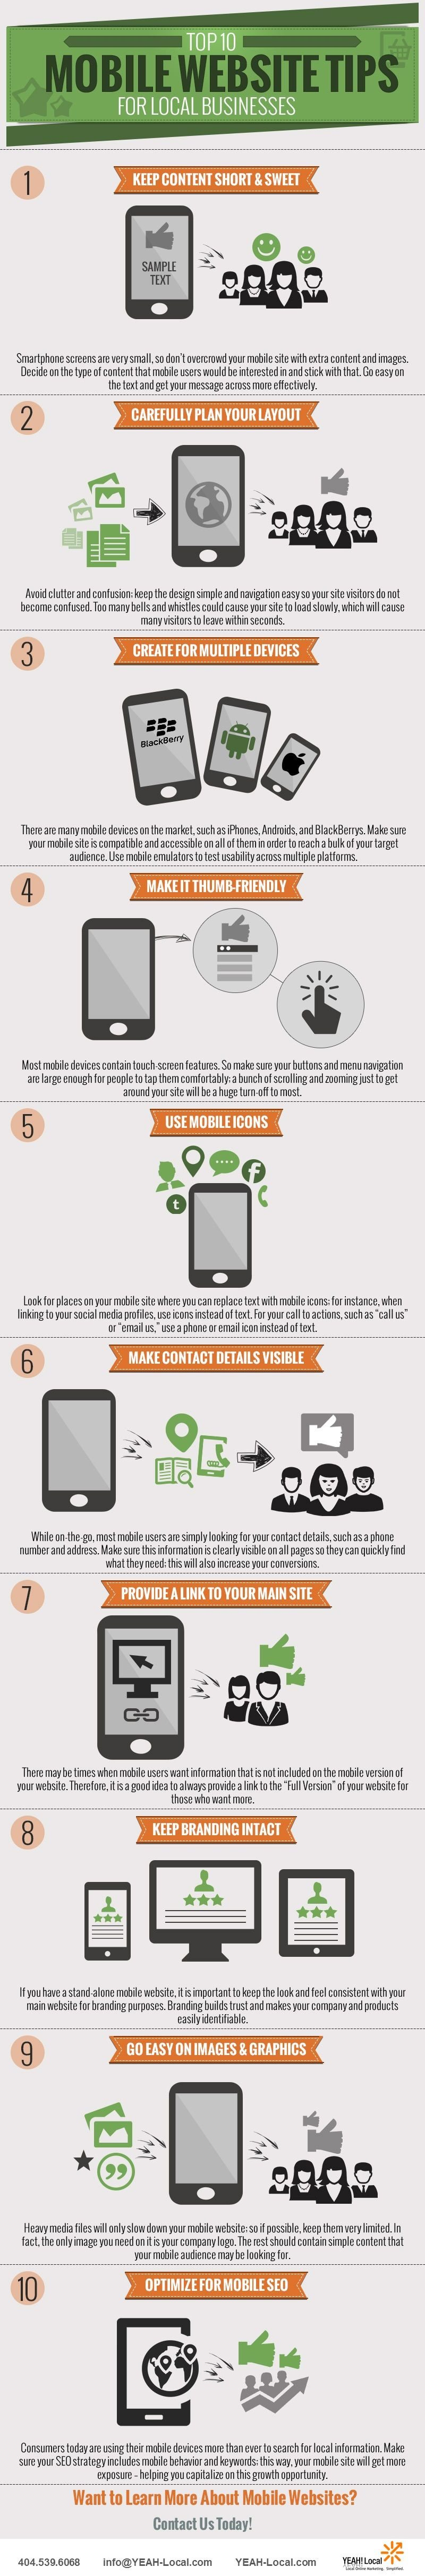 Top 10 tips for creating a mobile friendly website design solution for your business